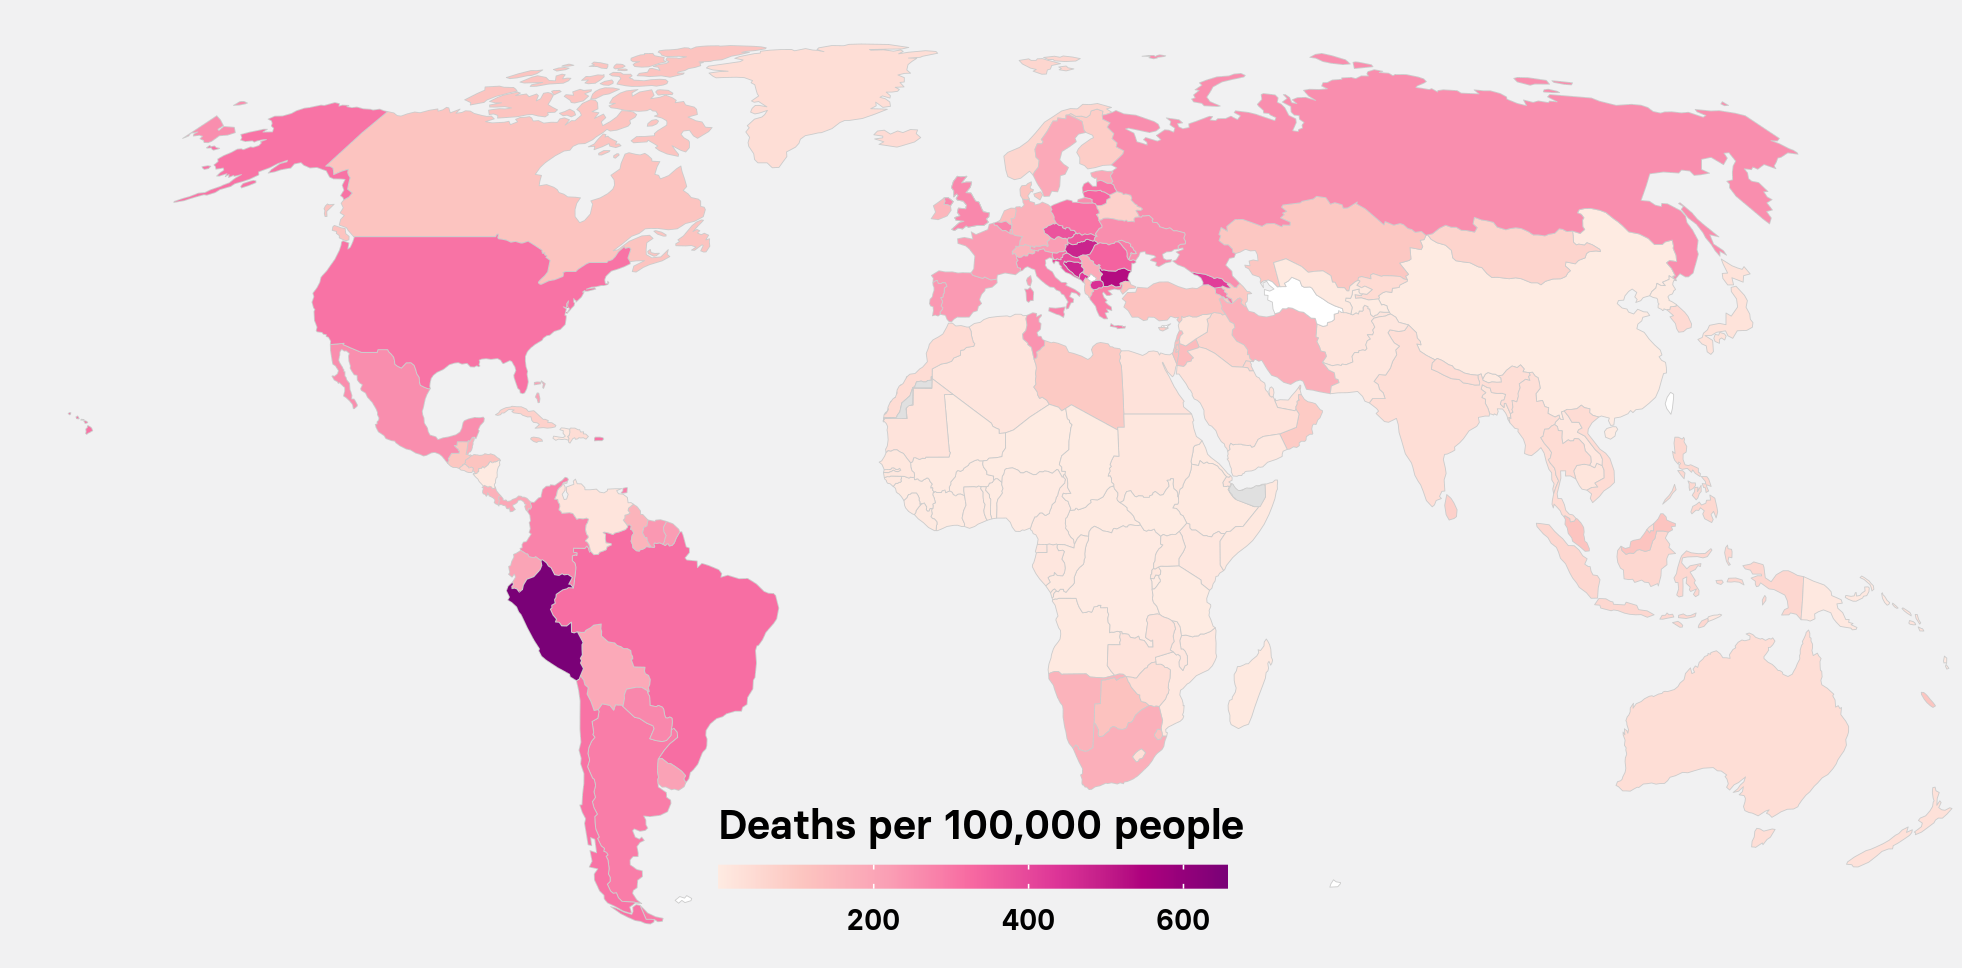 World deaths map